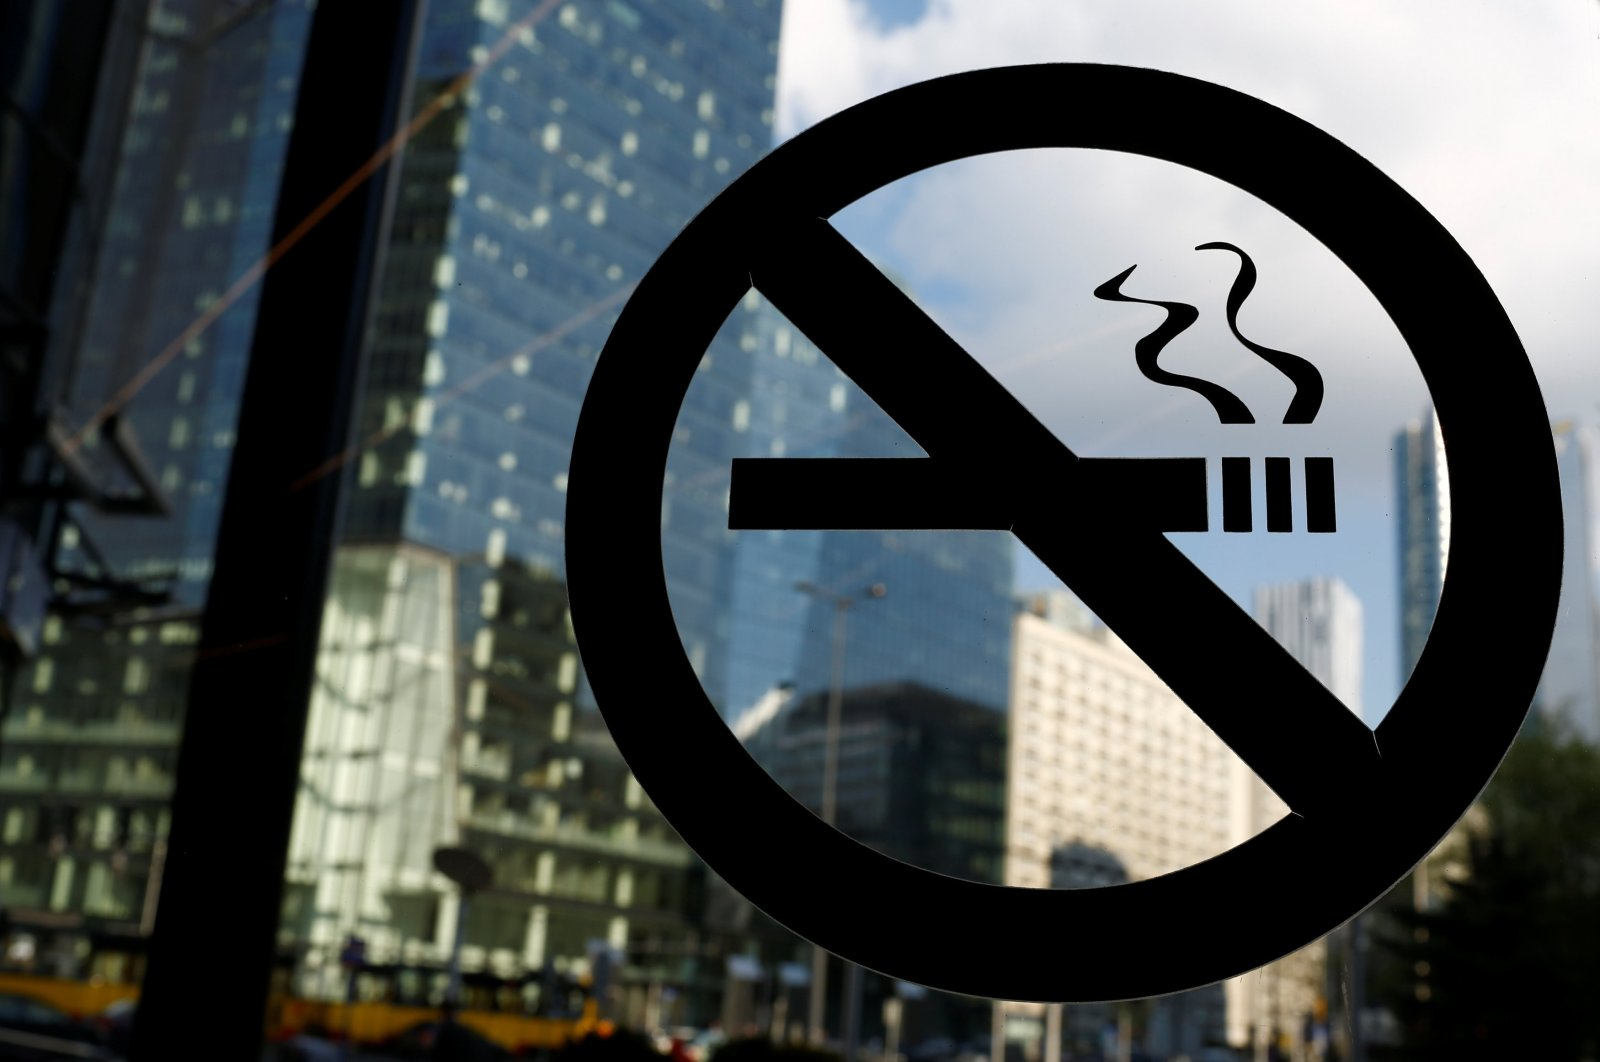 """A """"no smoking"""" sign is seen on the window of an office building in the center of Warsaw, Poland, May 12, 2017. (REUTERS Photo)"""